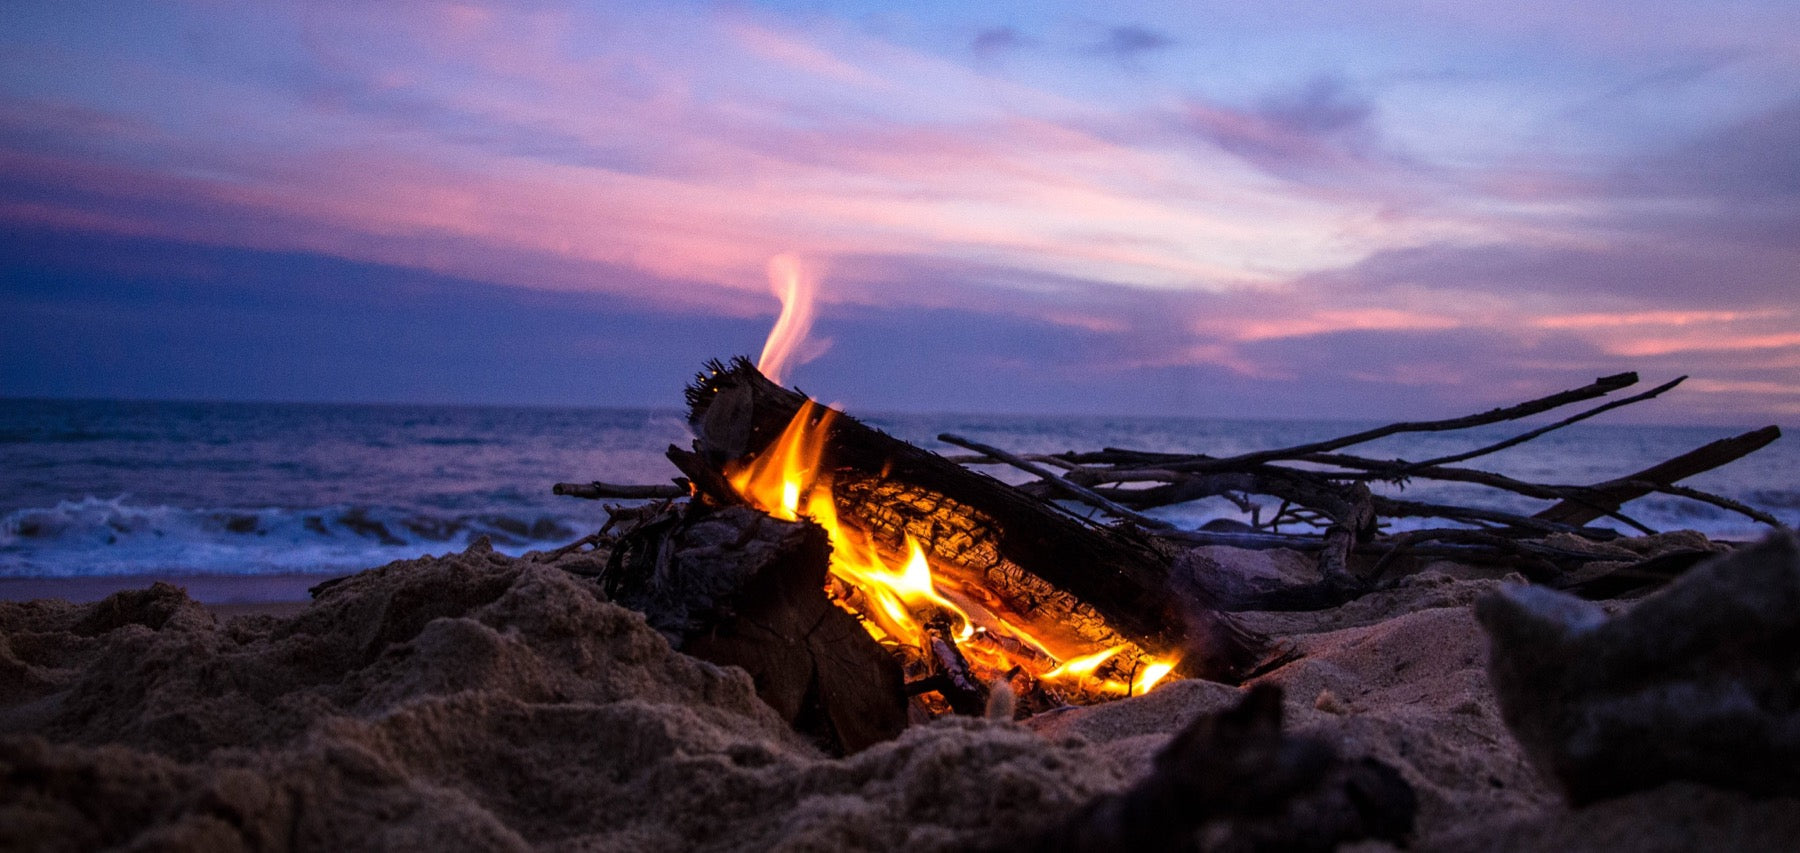 Beautiful view by the ocean with a campfire